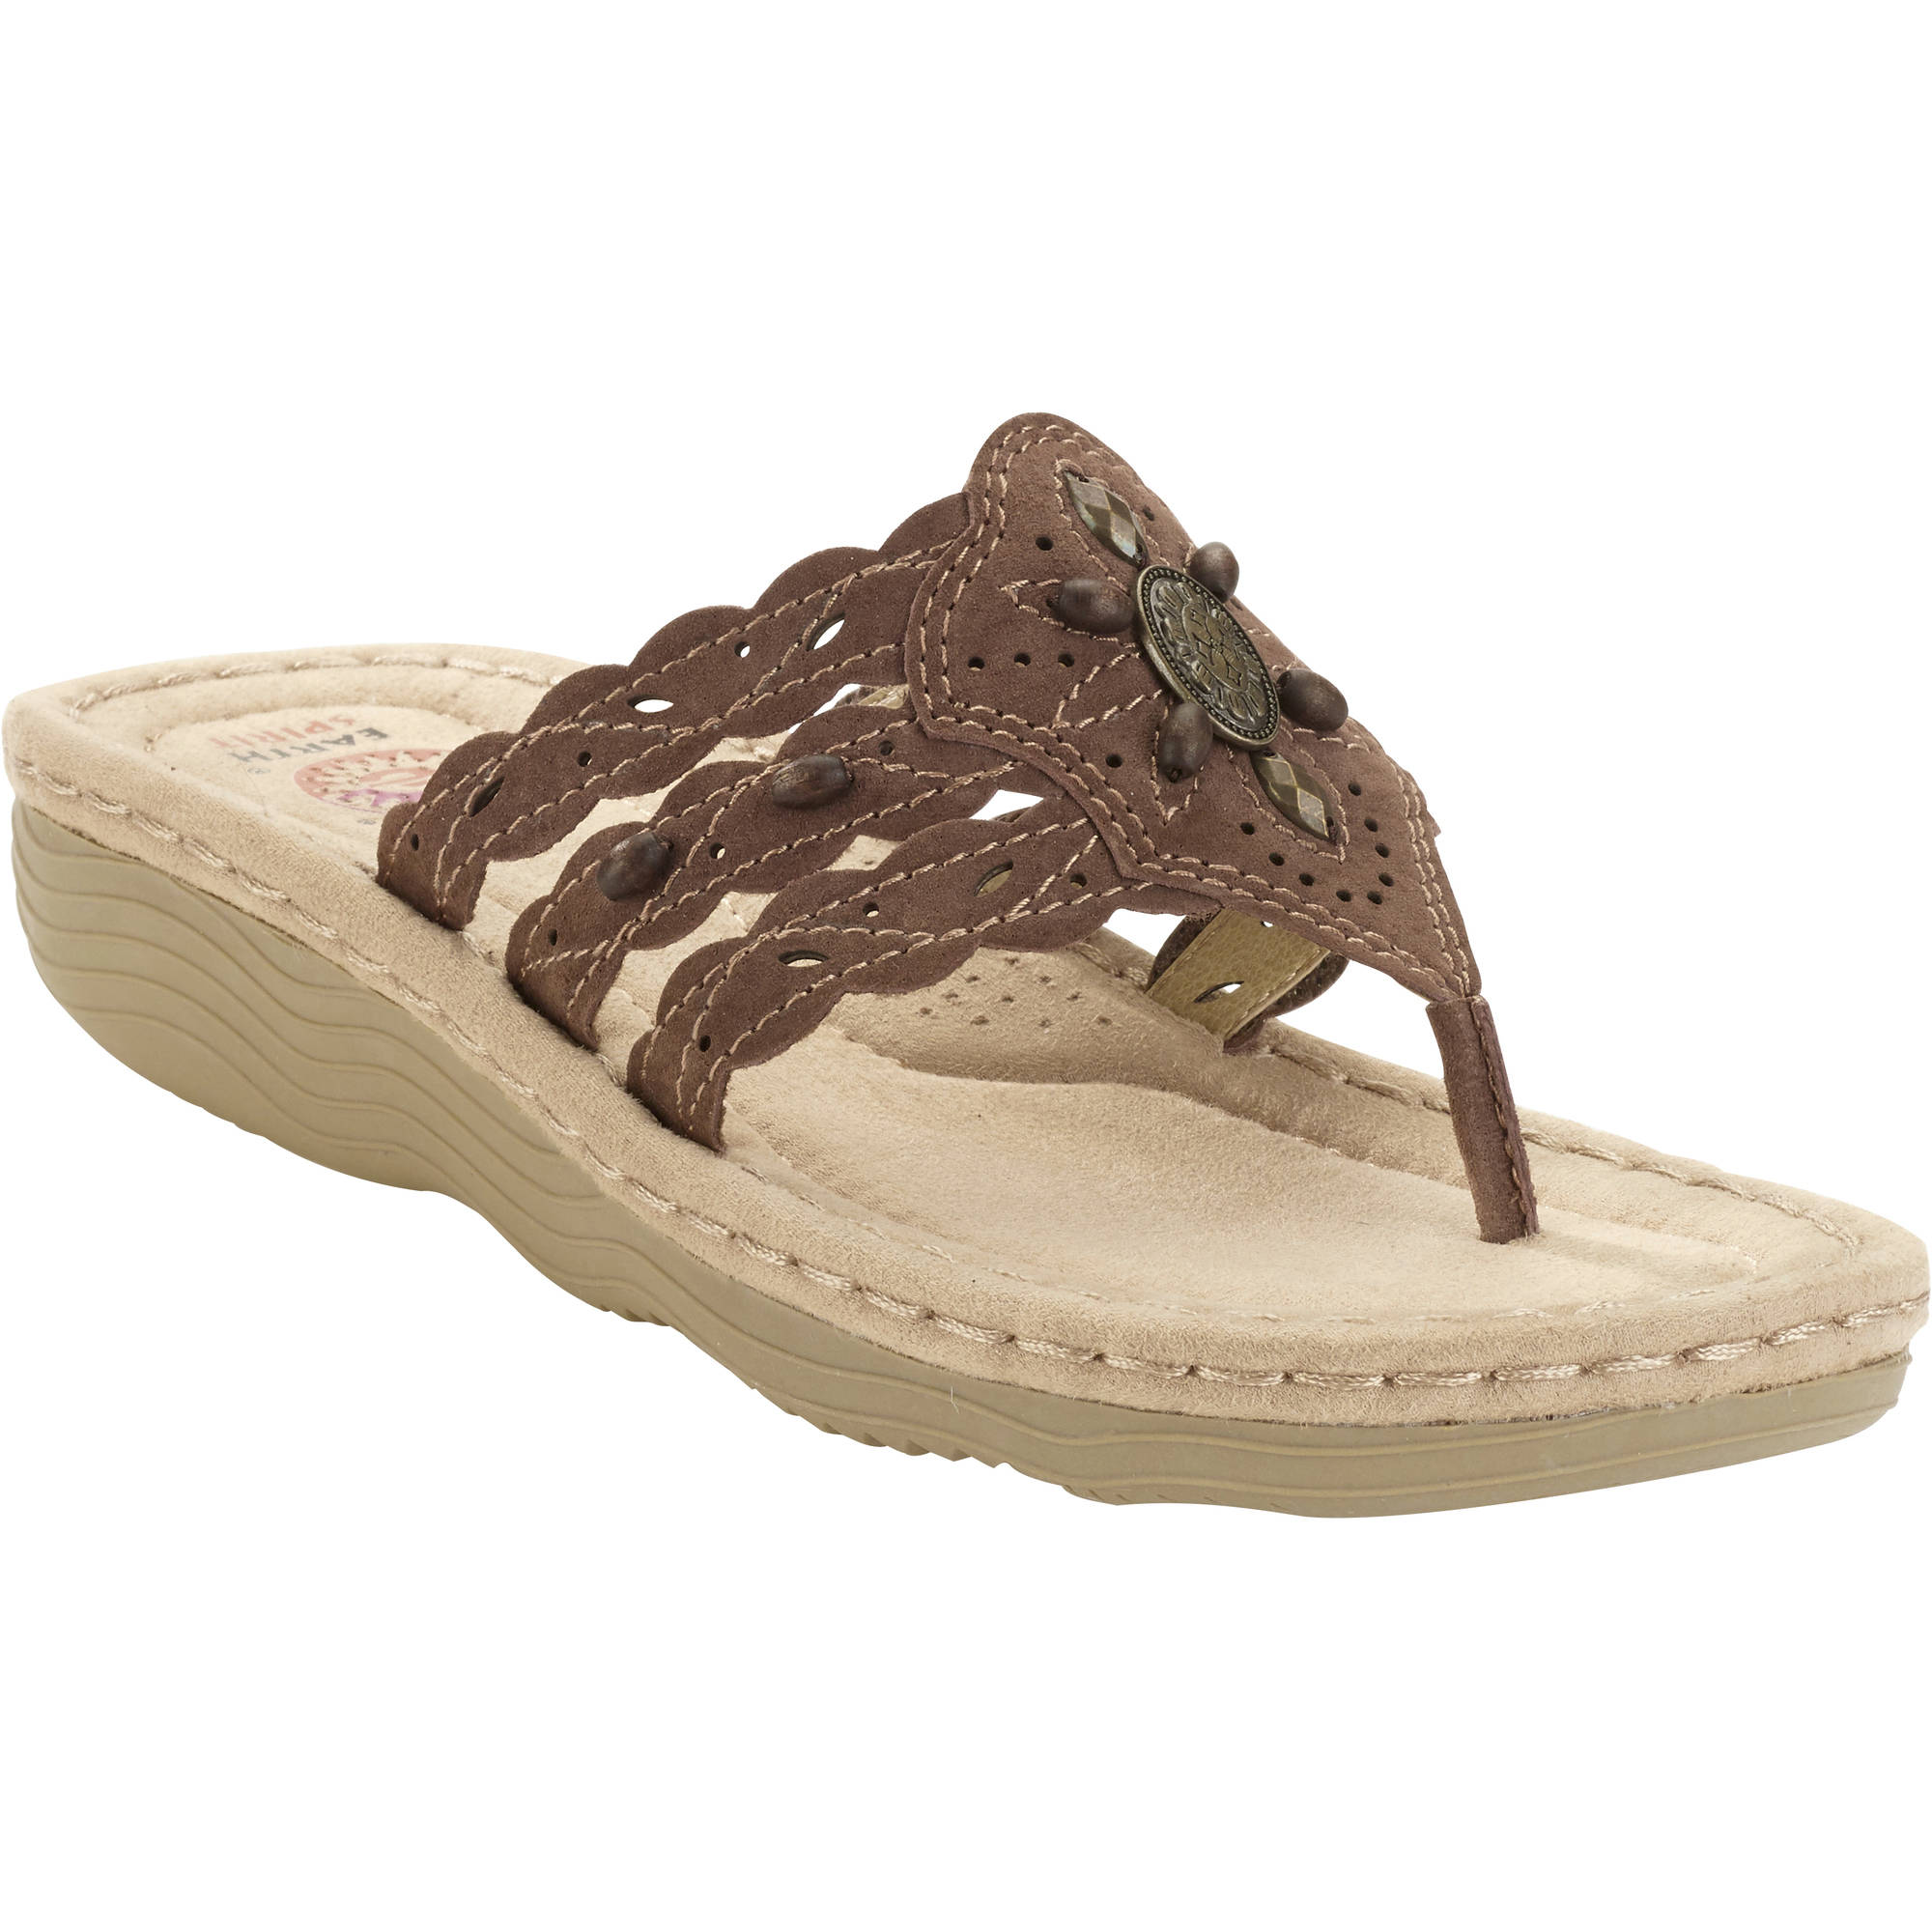 Earth Spirit Women's Tobi Sandal